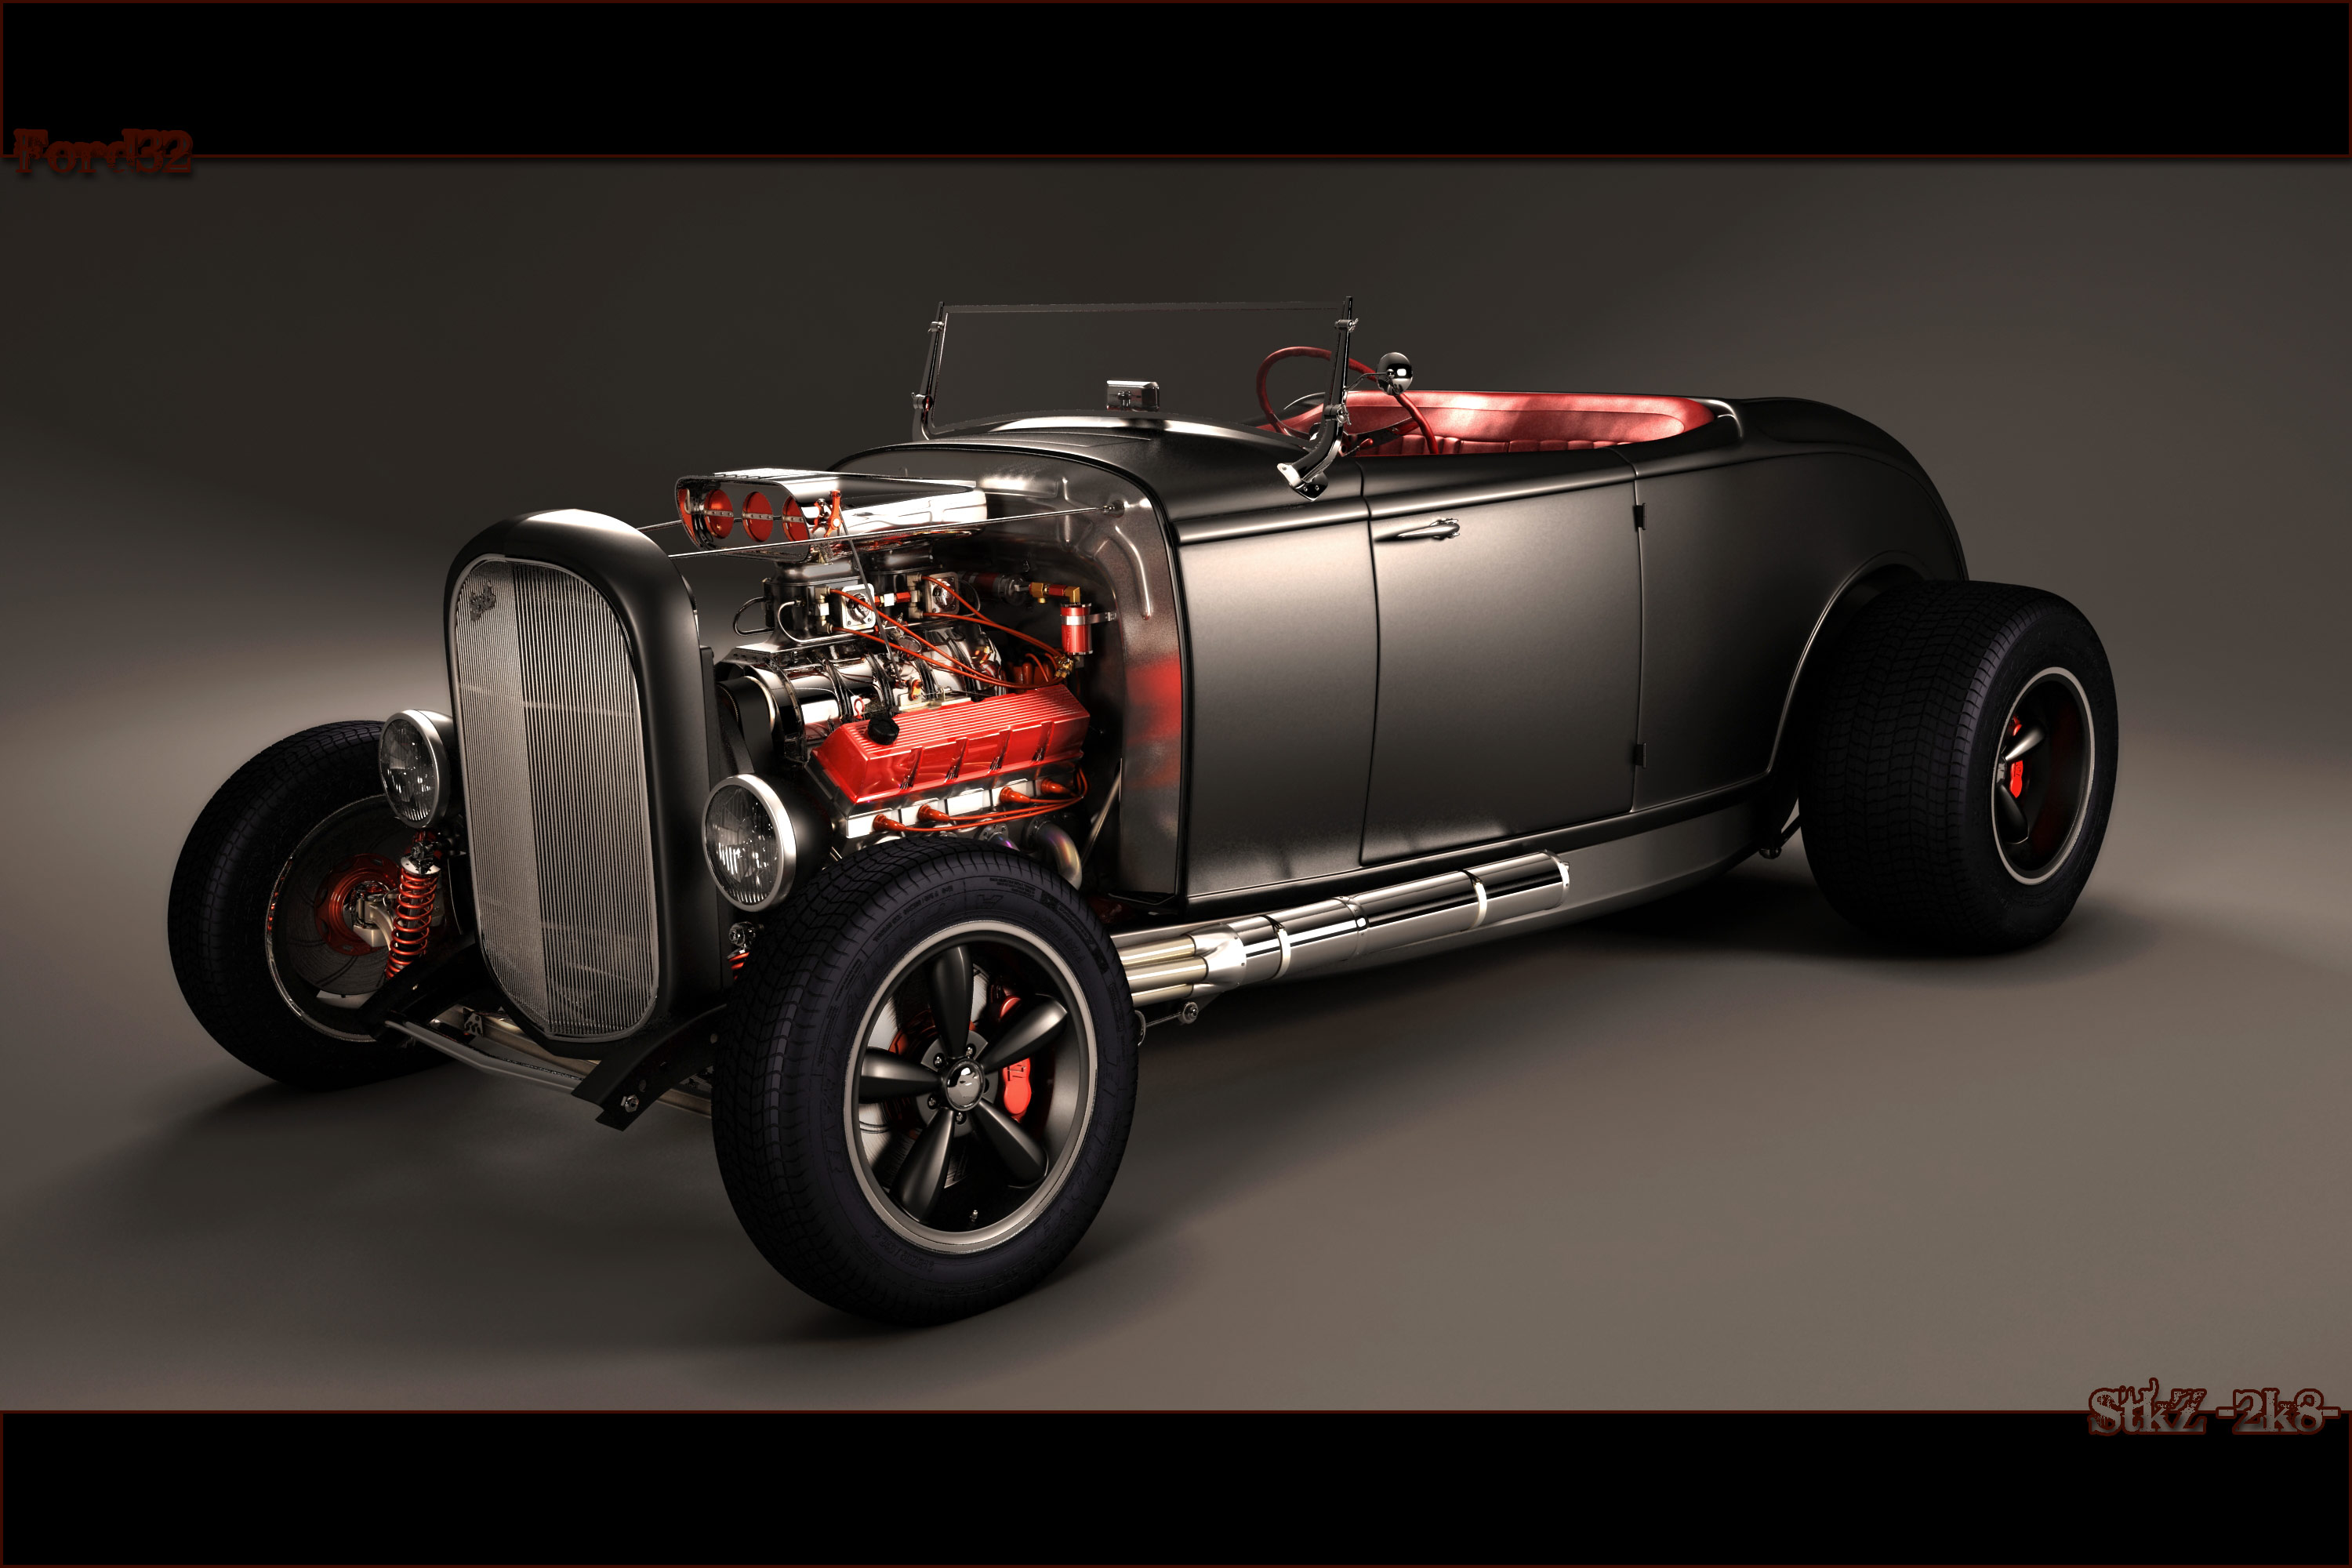 Hot Rod, historia del Custom | COCHES CLASICOS DE HOY